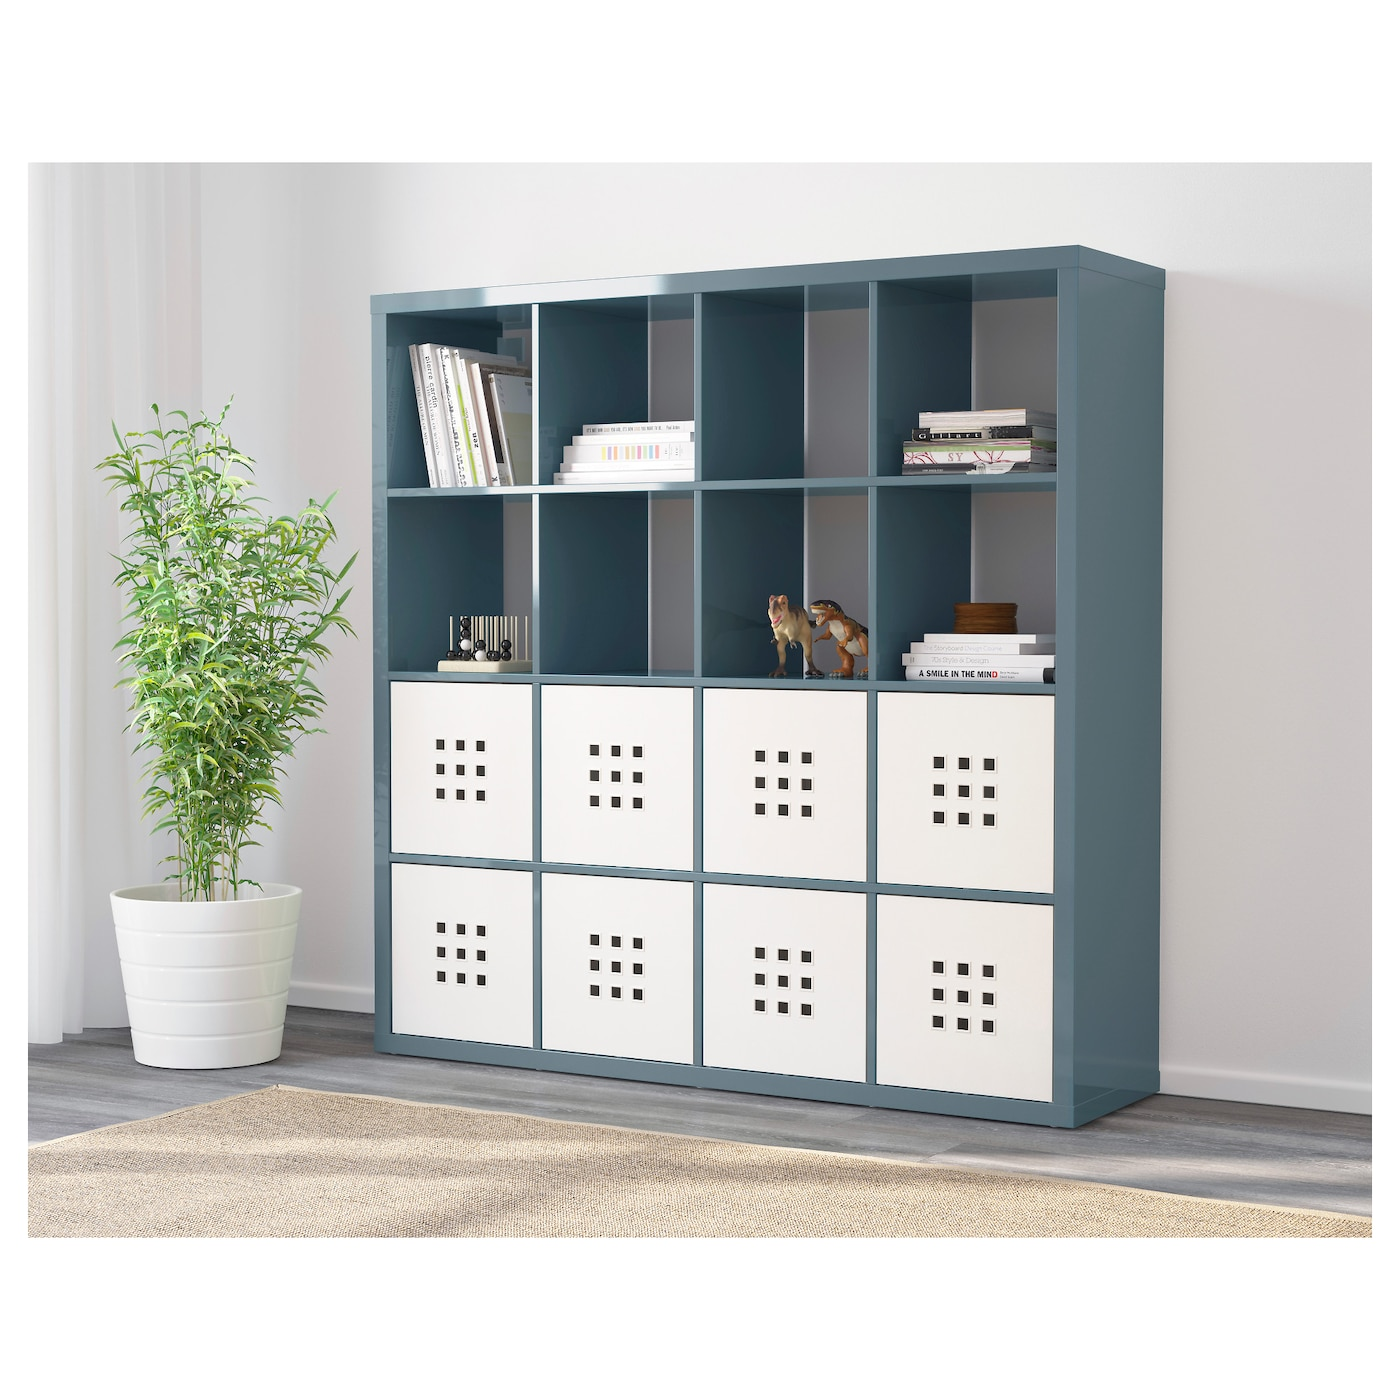 kallax tag re brillant gris turquoise 147x147 cm ikea. Black Bedroom Furniture Sets. Home Design Ideas